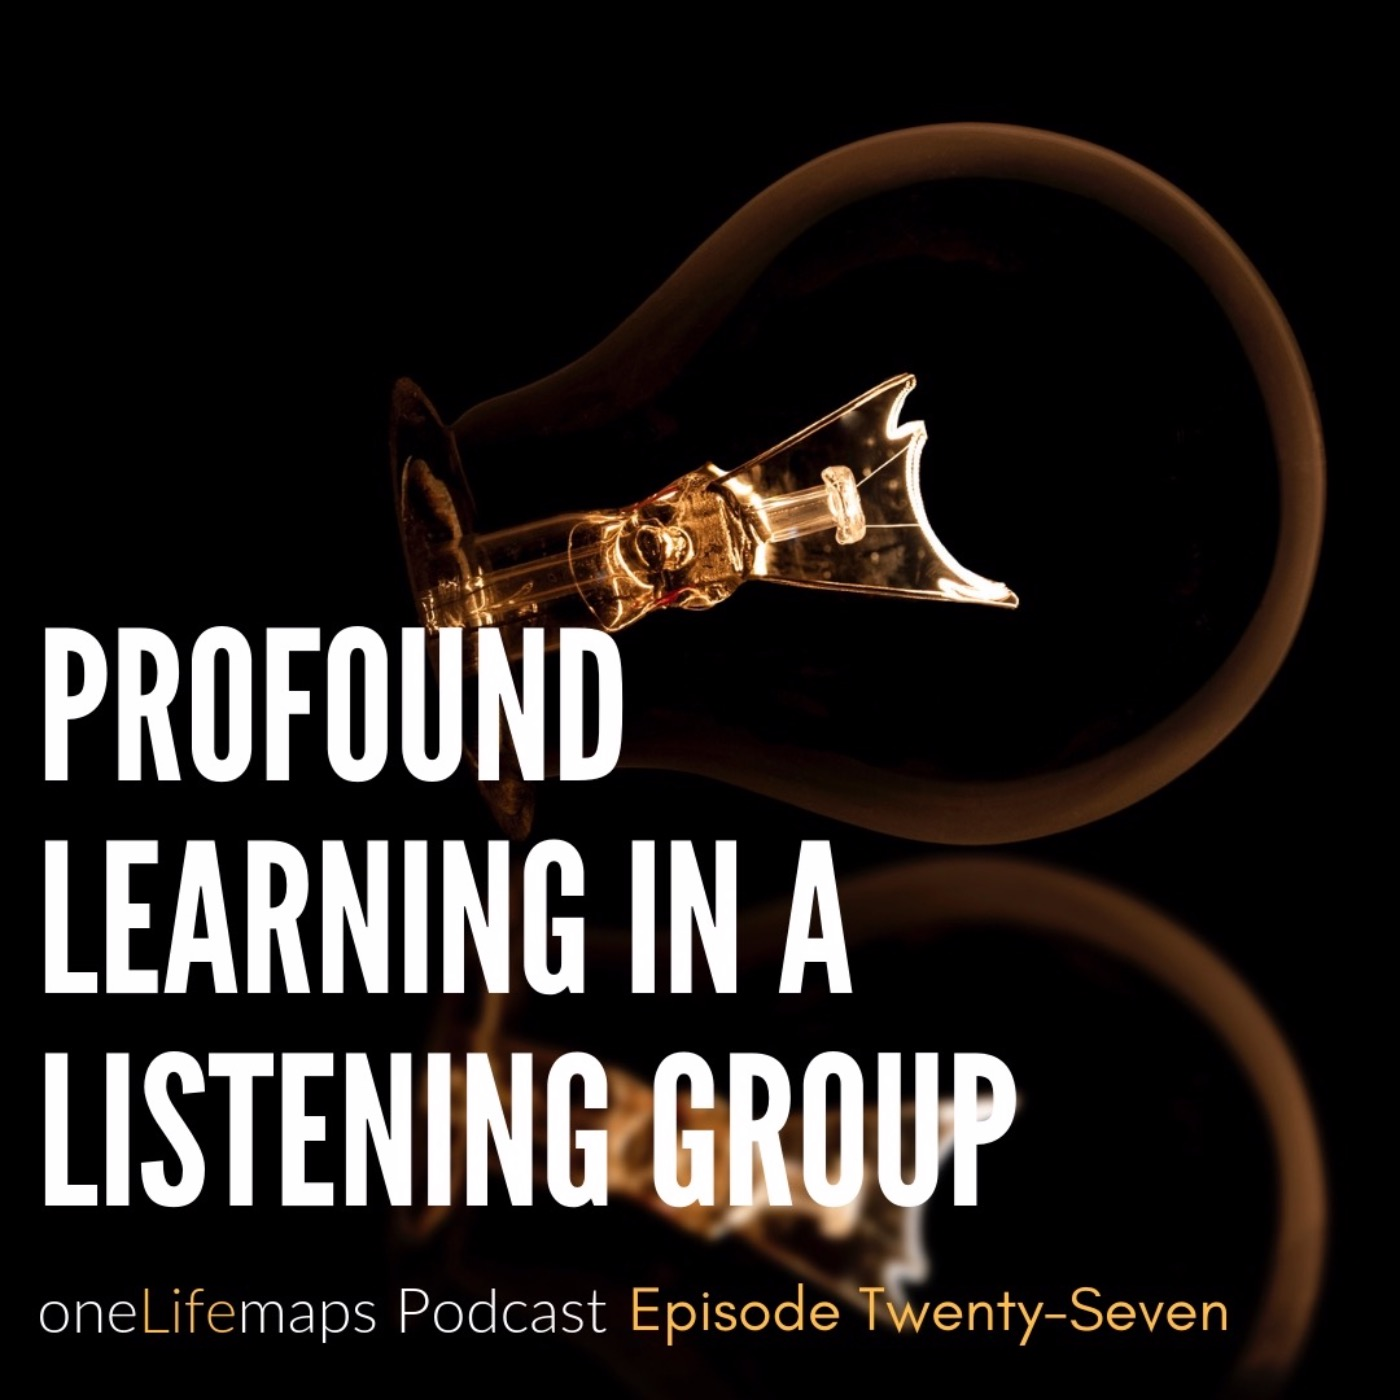 Profound Learning in a Listening Group - with Karen Mains